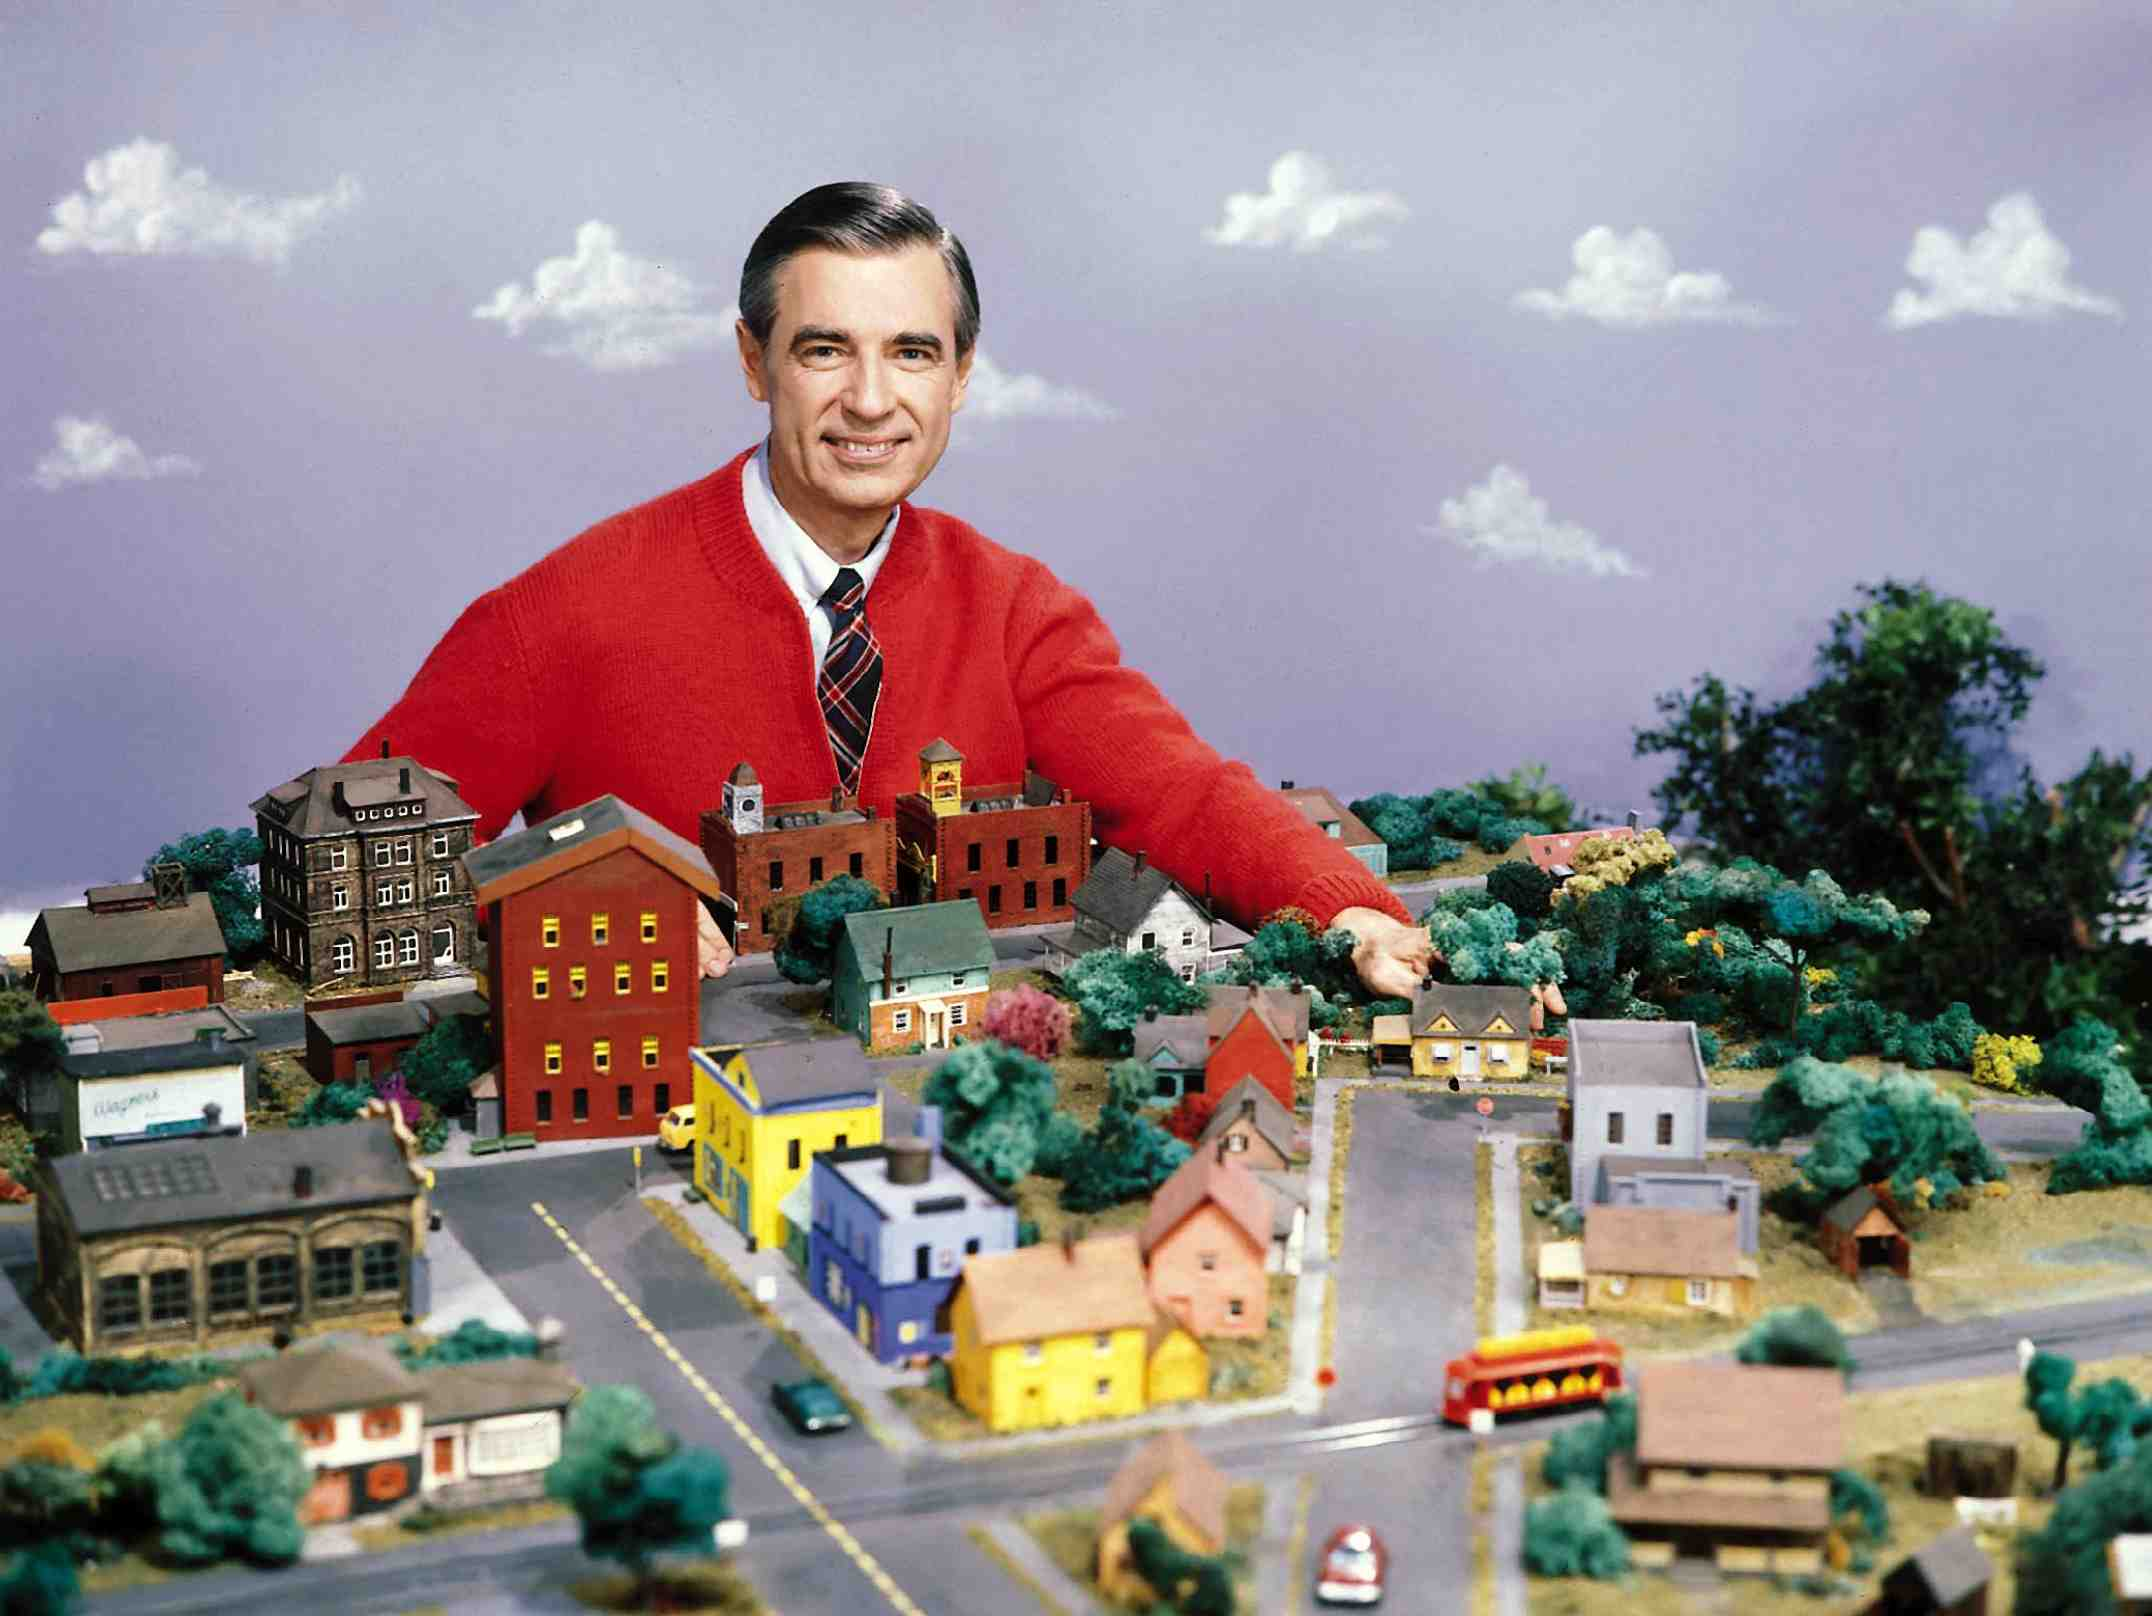 Honoring Fred Rogers Pennsylvania Declares May 23 1 4 3 Day Encourages Acts Of Kindness Nepa Scene